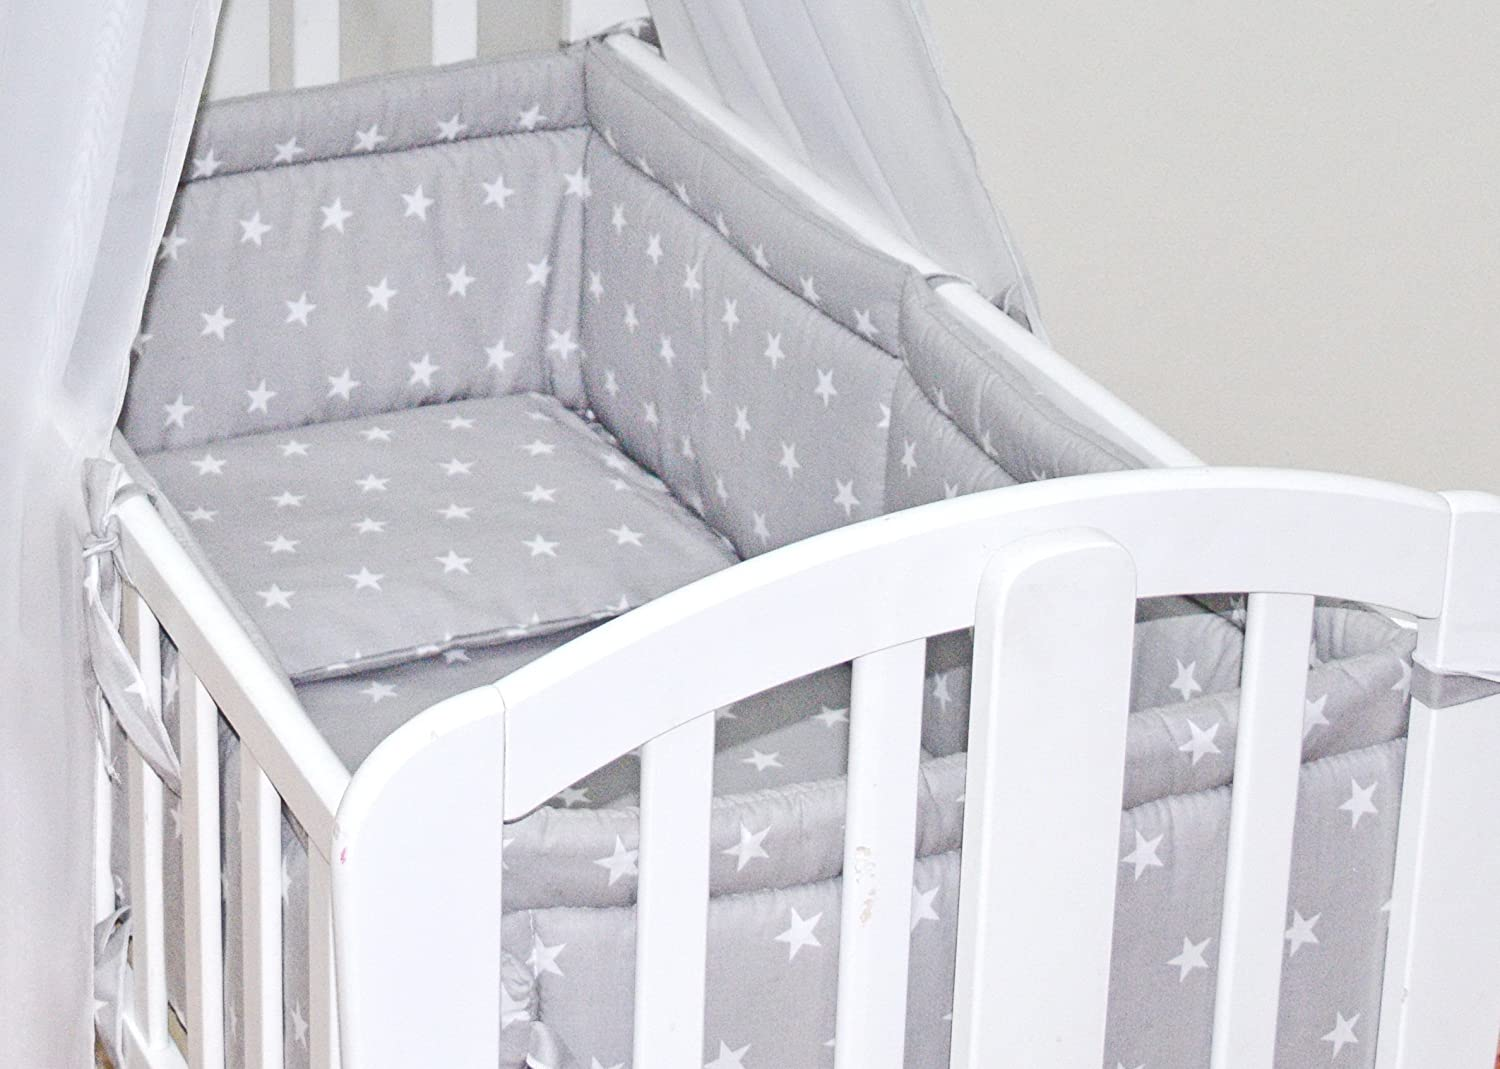 6pcs BABY SWINGING/ ROCKING CRIB /CRADLE BEDDING SET/ALL ROUND BUMPER 100% COTTON! (Grey Stars) COKAY LTD